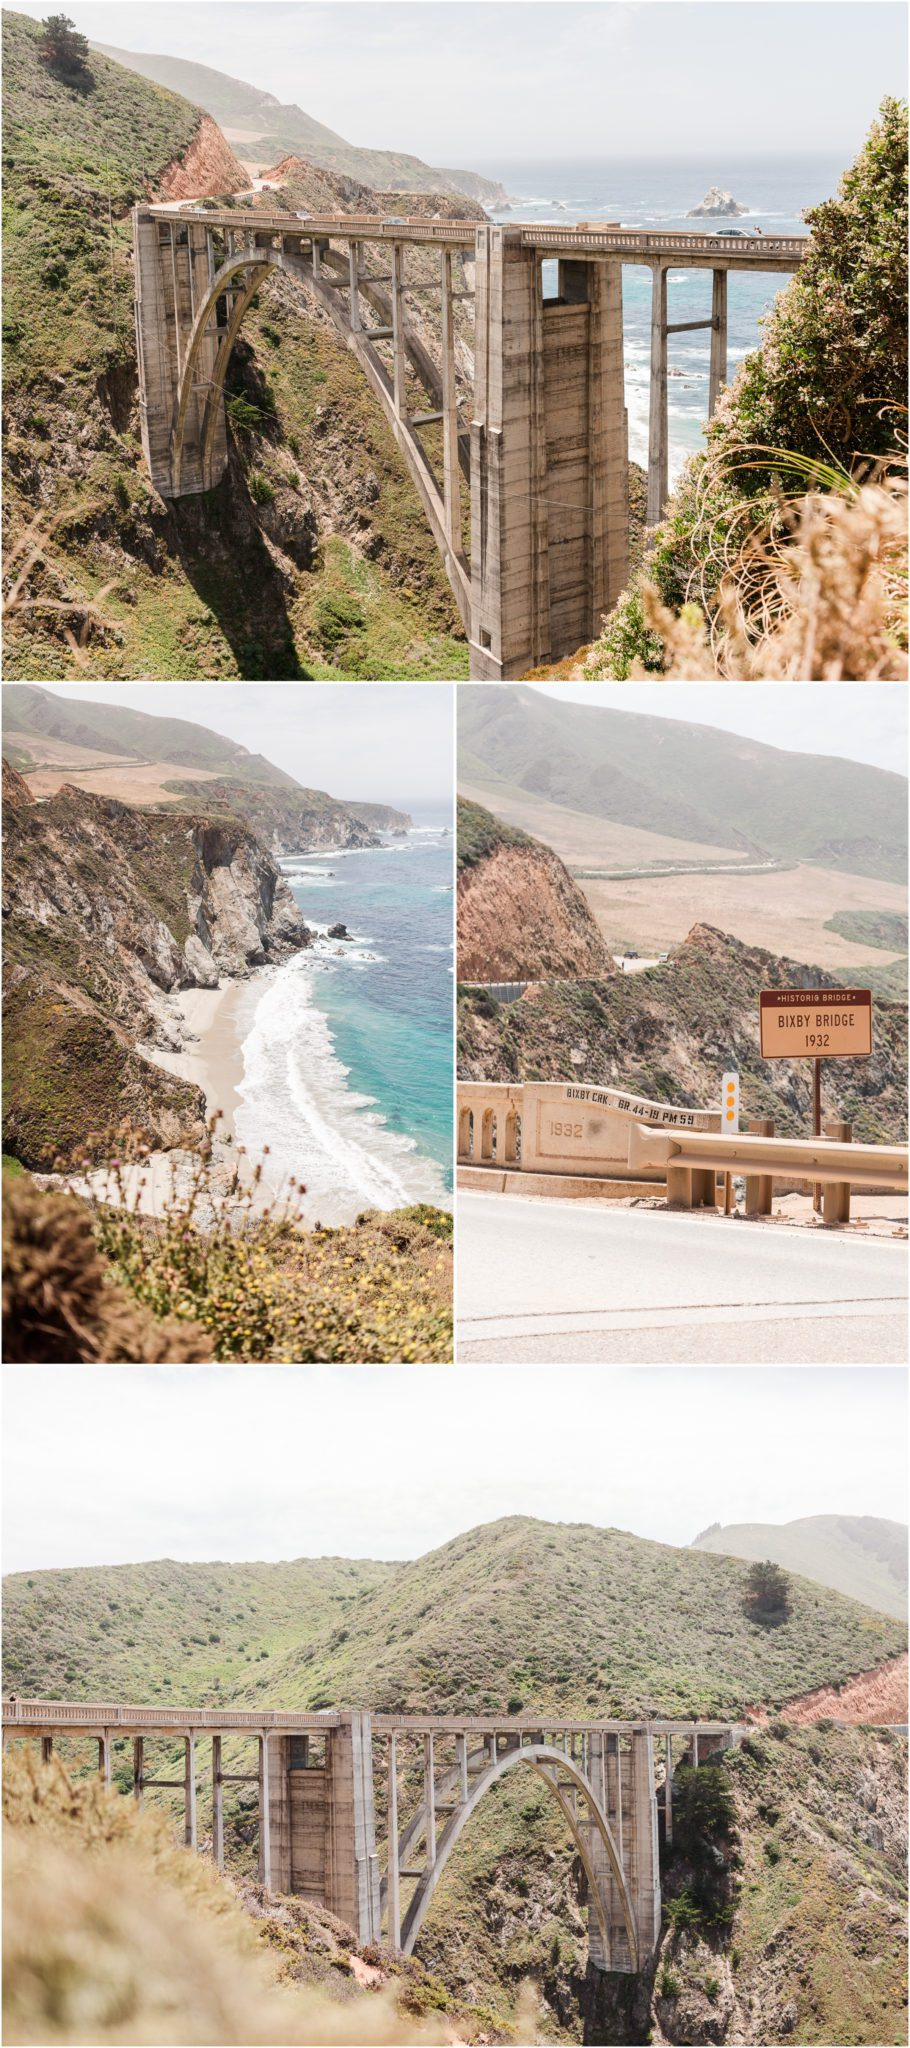 The Bixby Bridge on the road to Big Sur